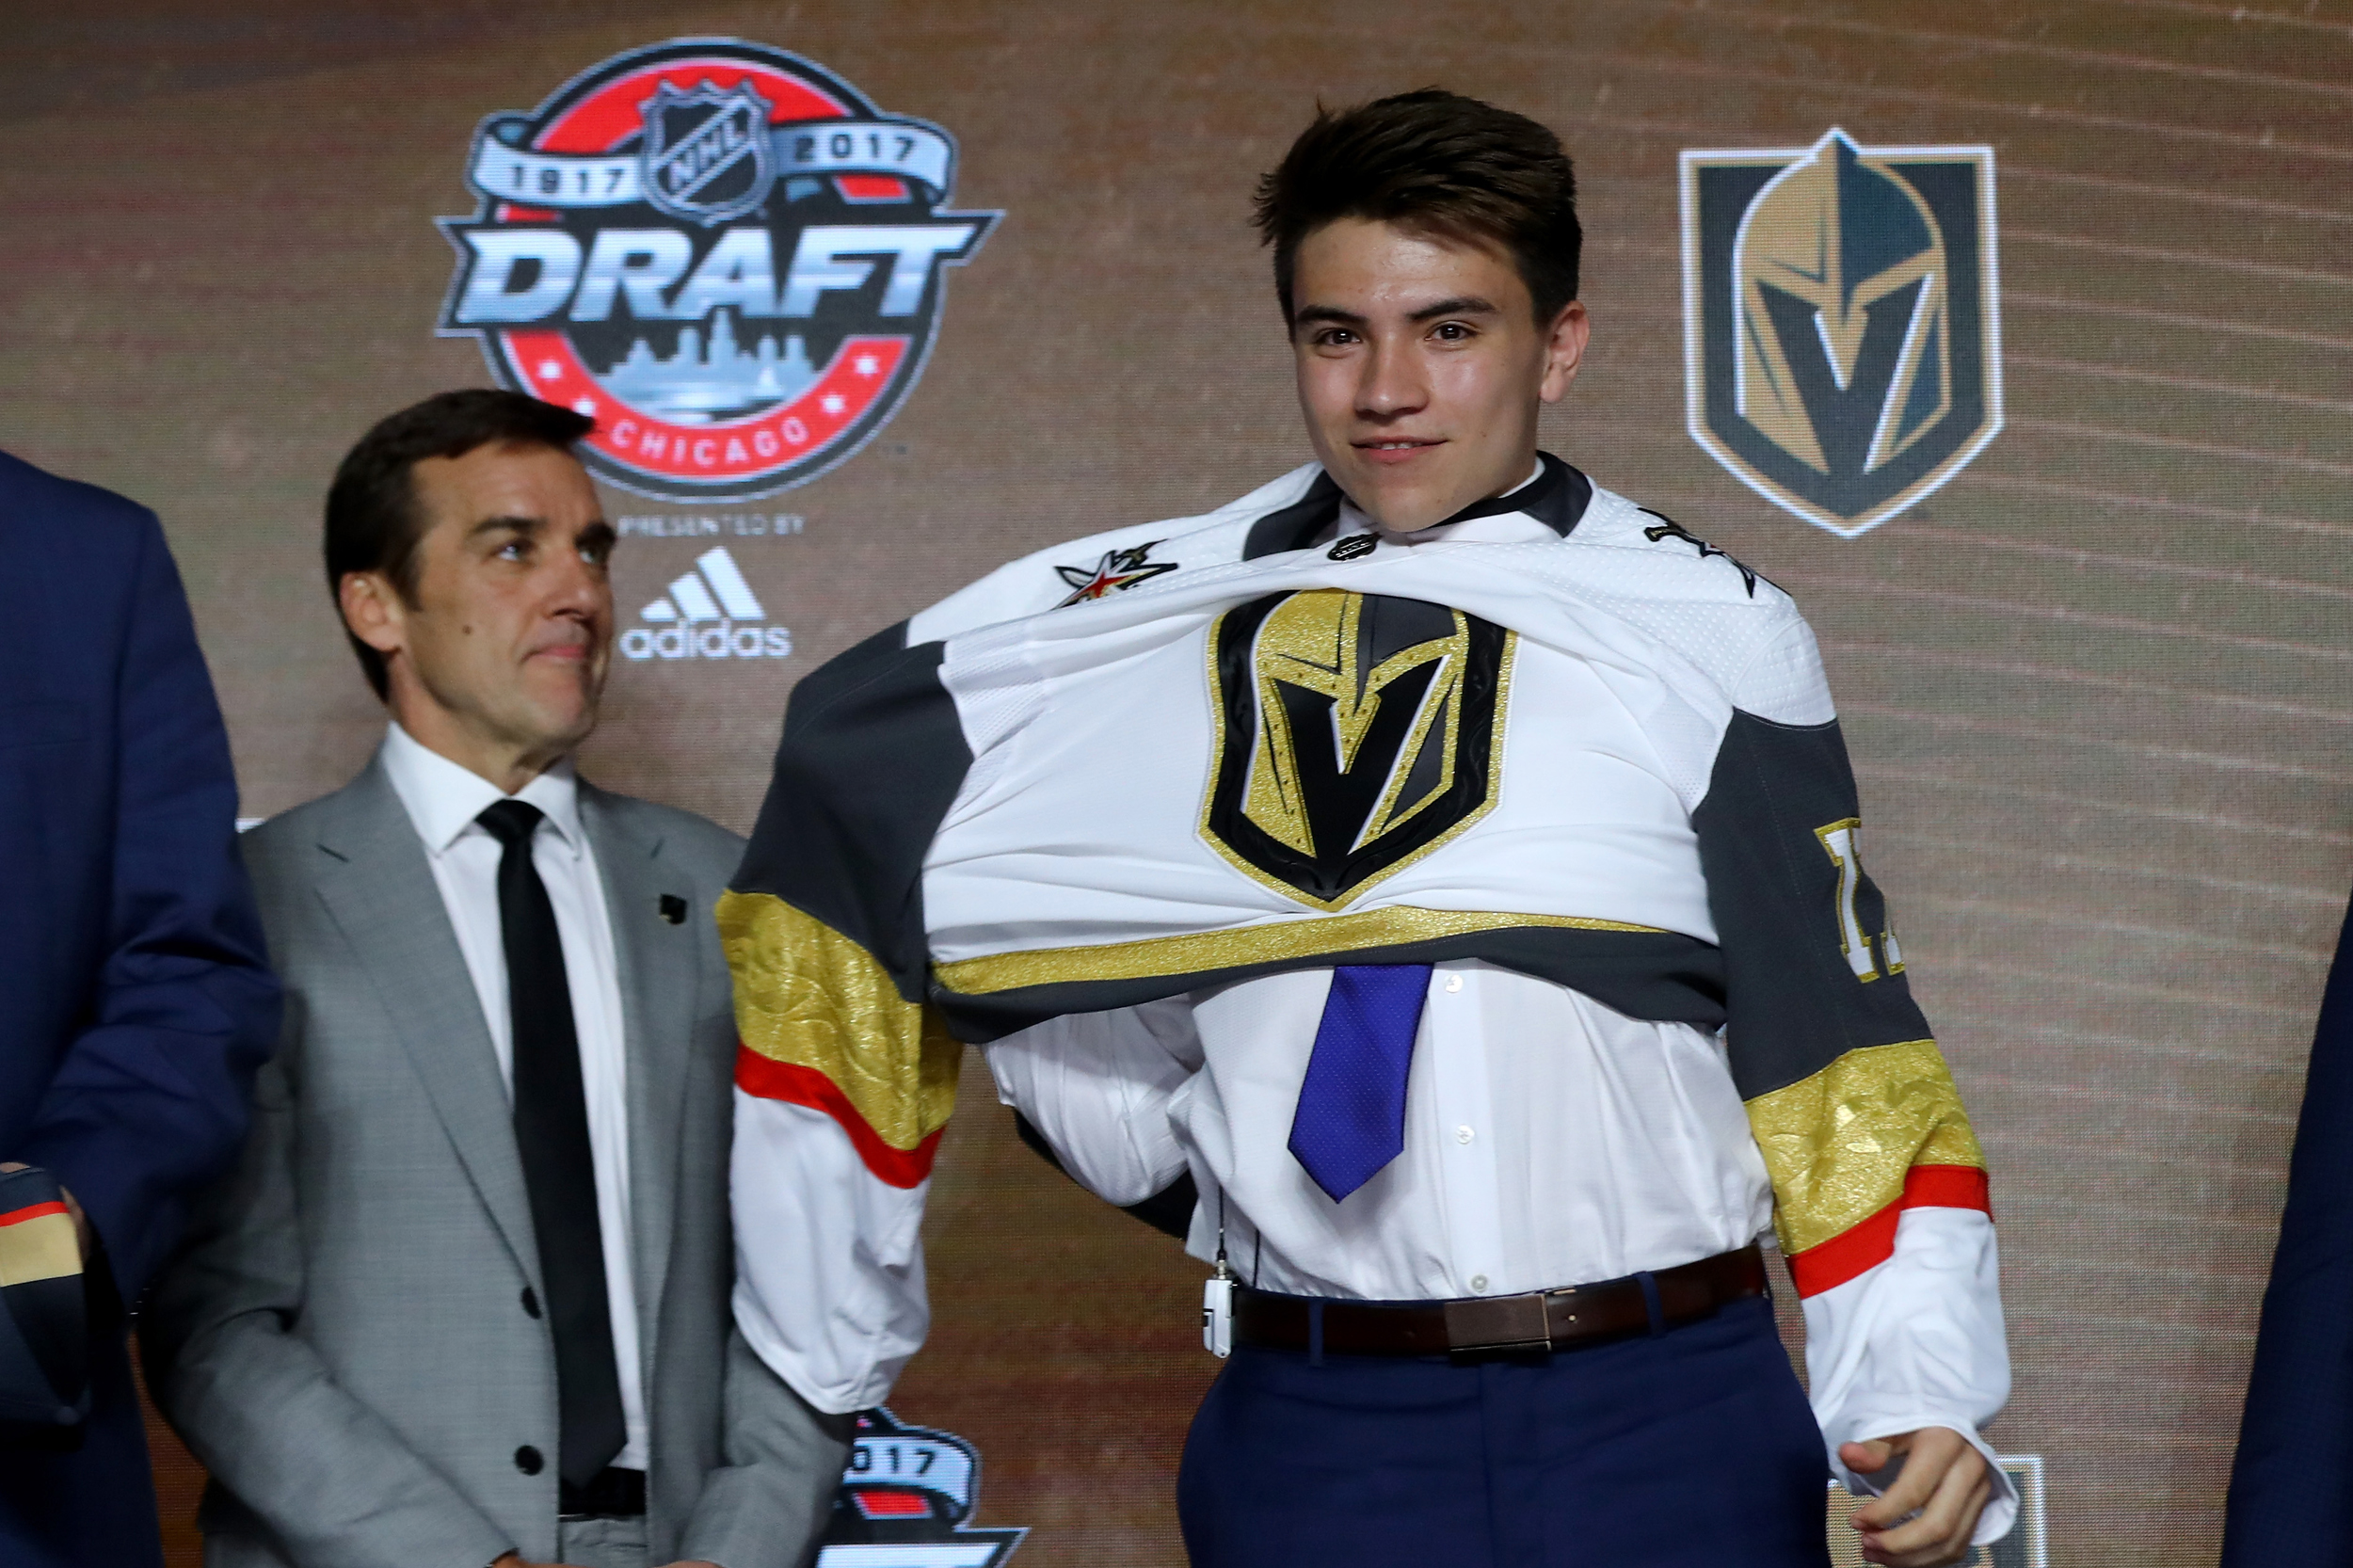 Image: Nick Suzuki puts on the Vegas Golden Knights jersey during the 2017 NHL draft